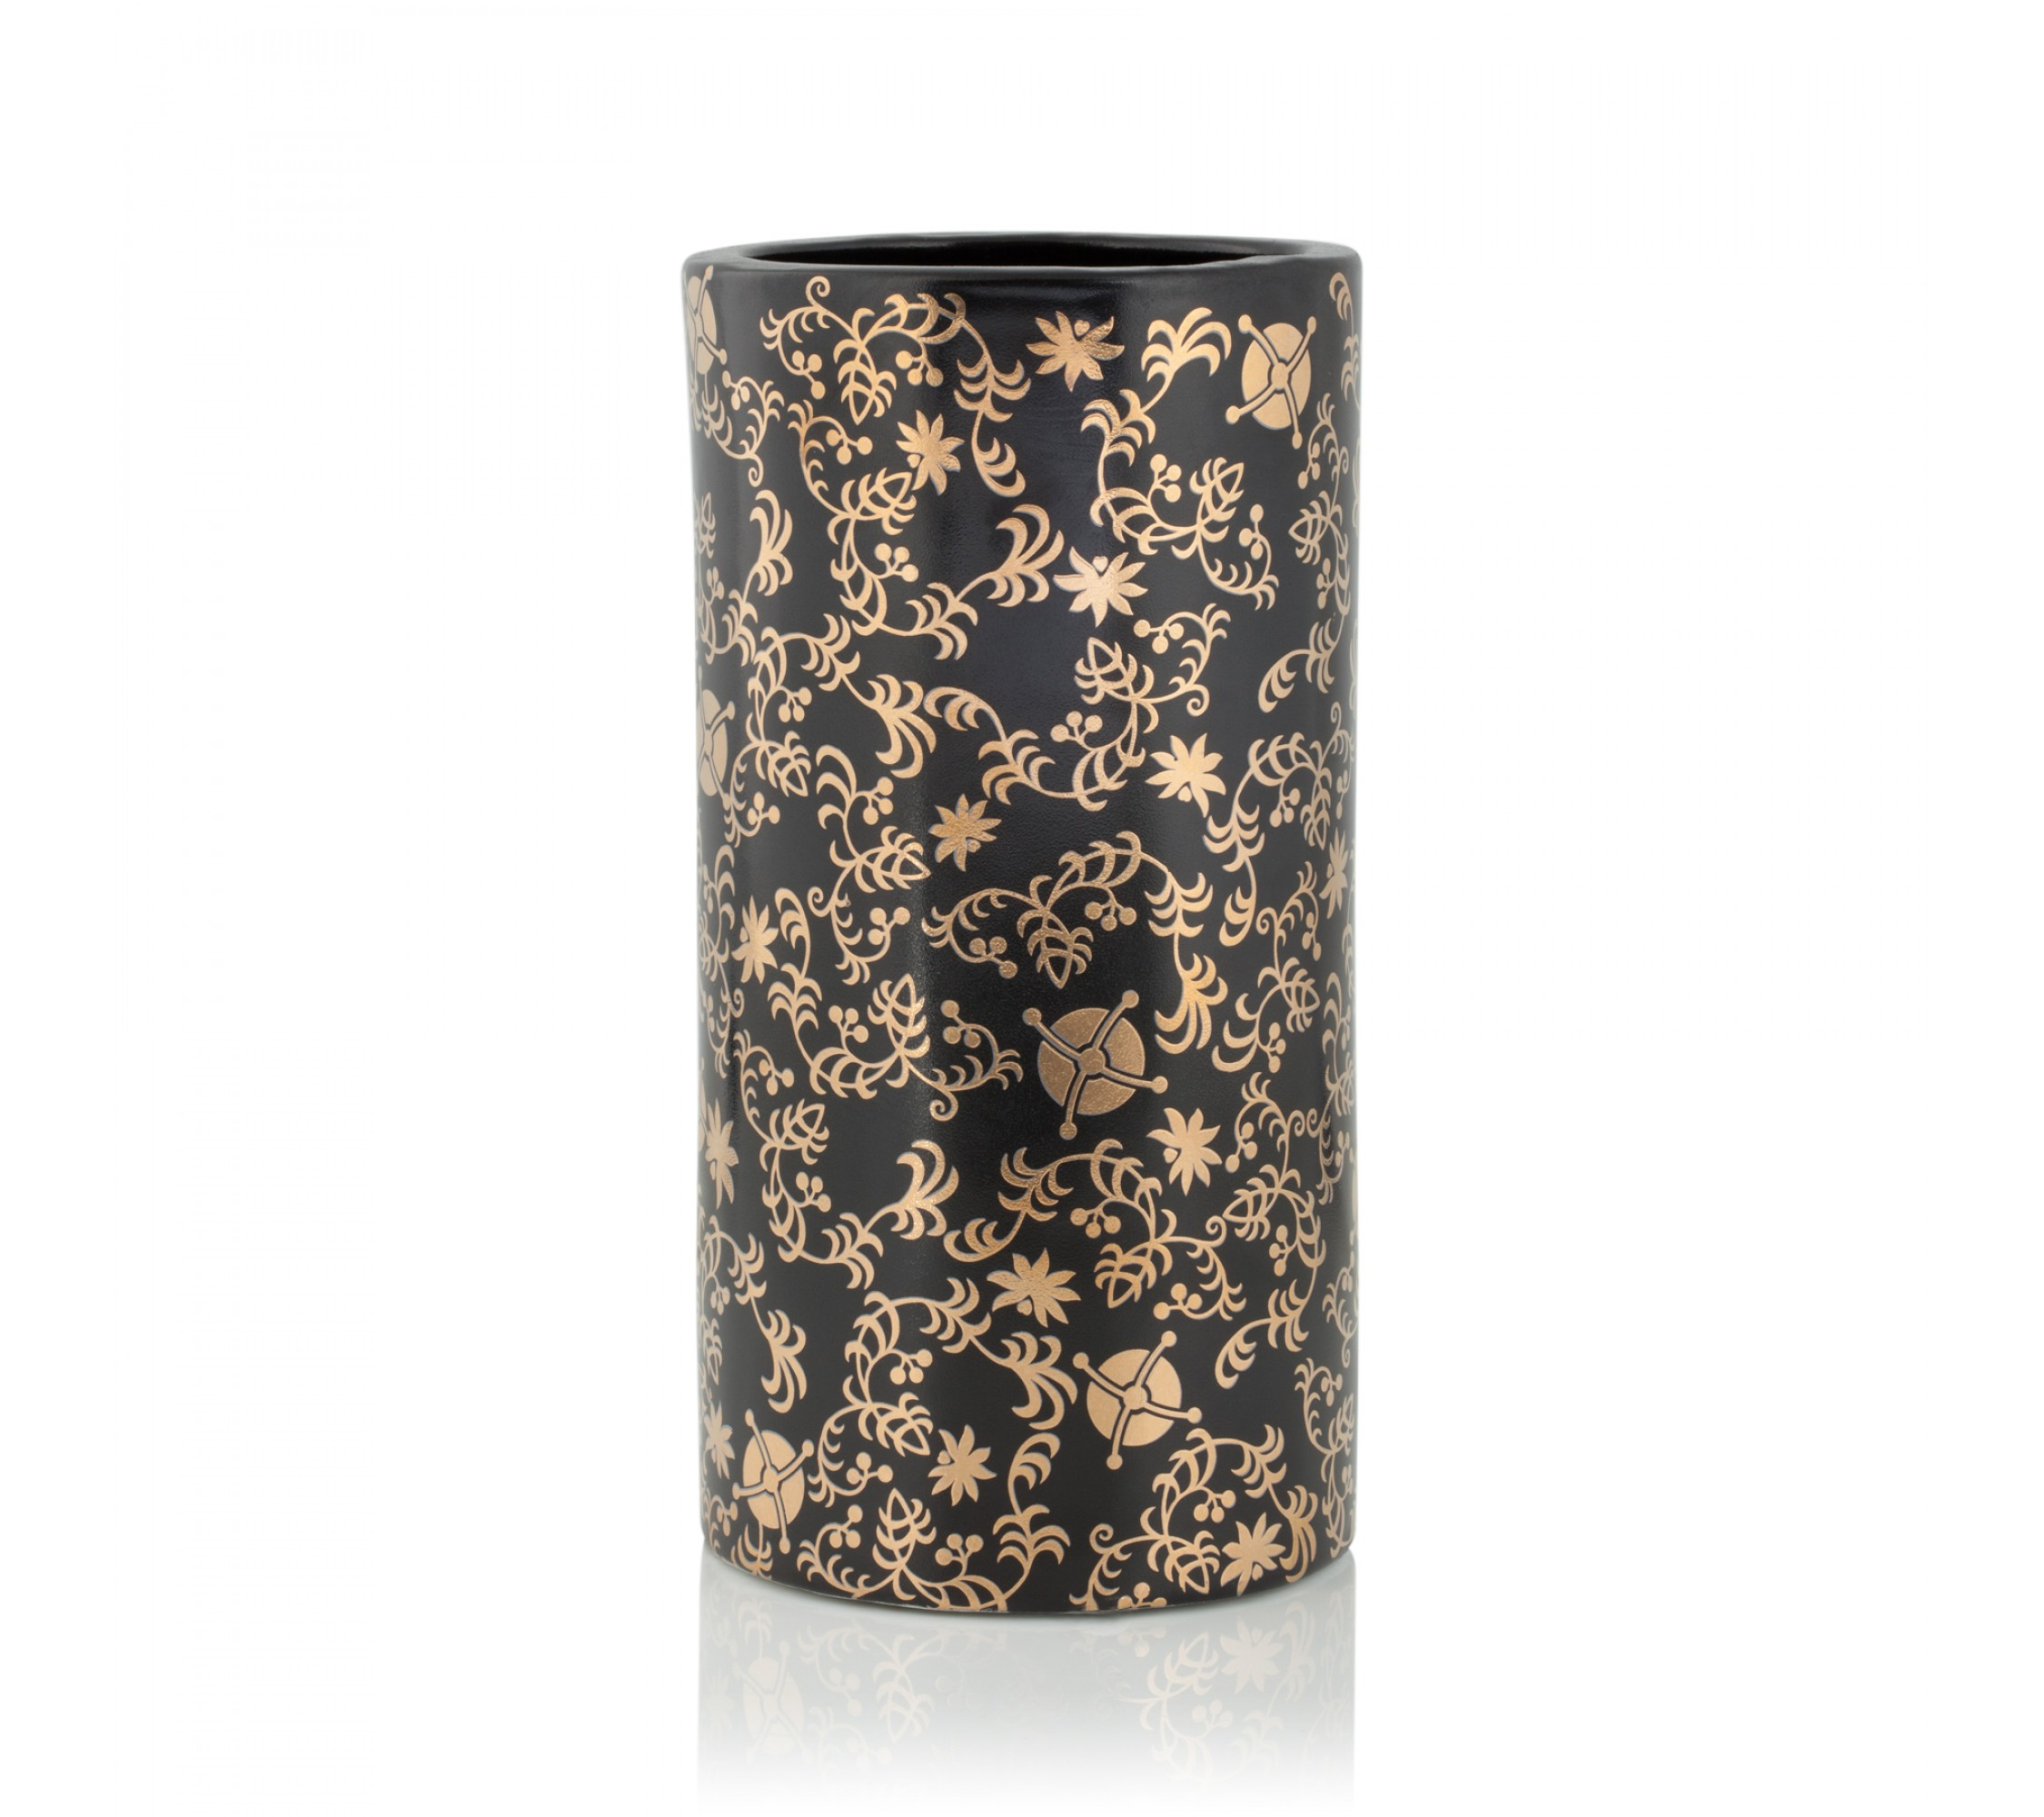 Vase Keramik - Golden Floral Medium